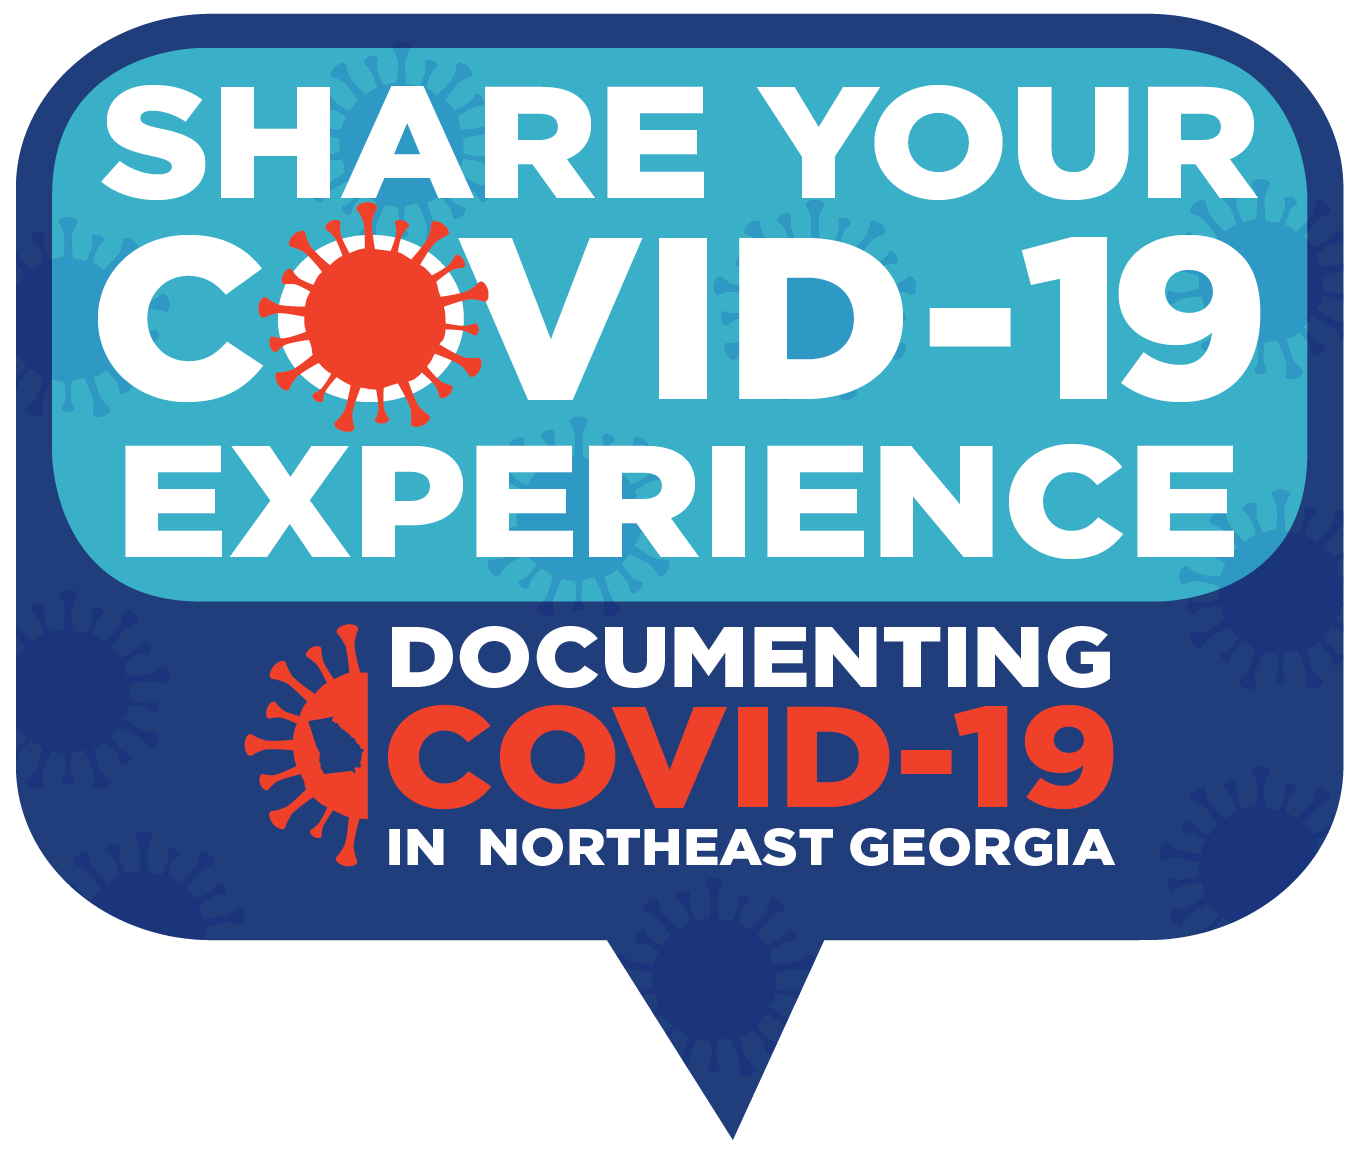 Share your COVID-19 Experience conversation bubble